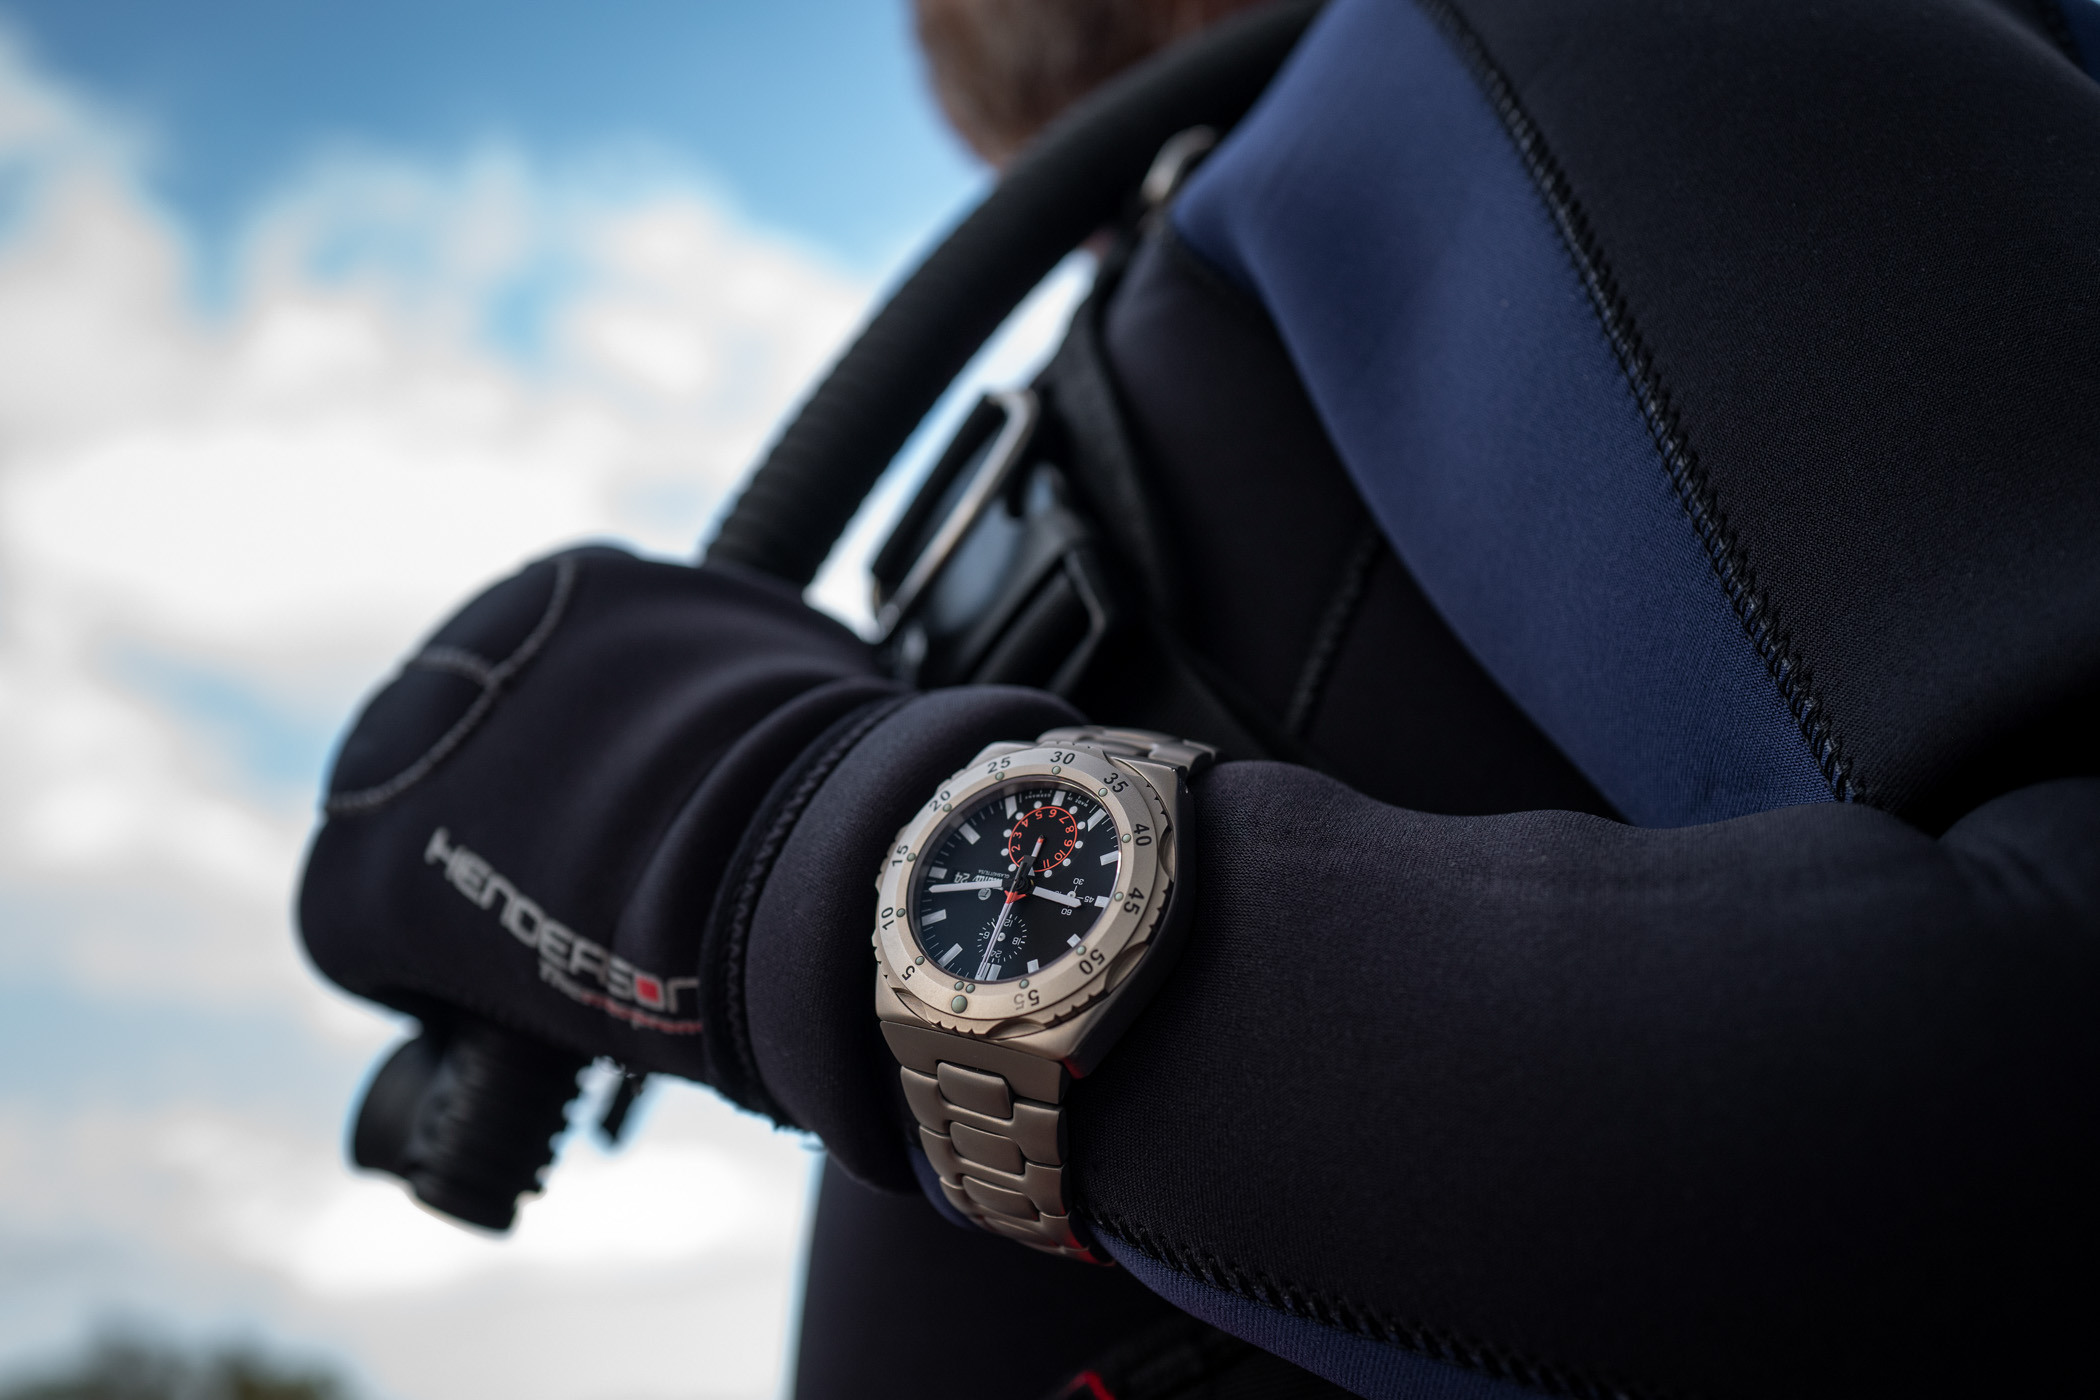 In-Depth Review - Diving With The Tutima M2 Pioneer Chronograph 6451